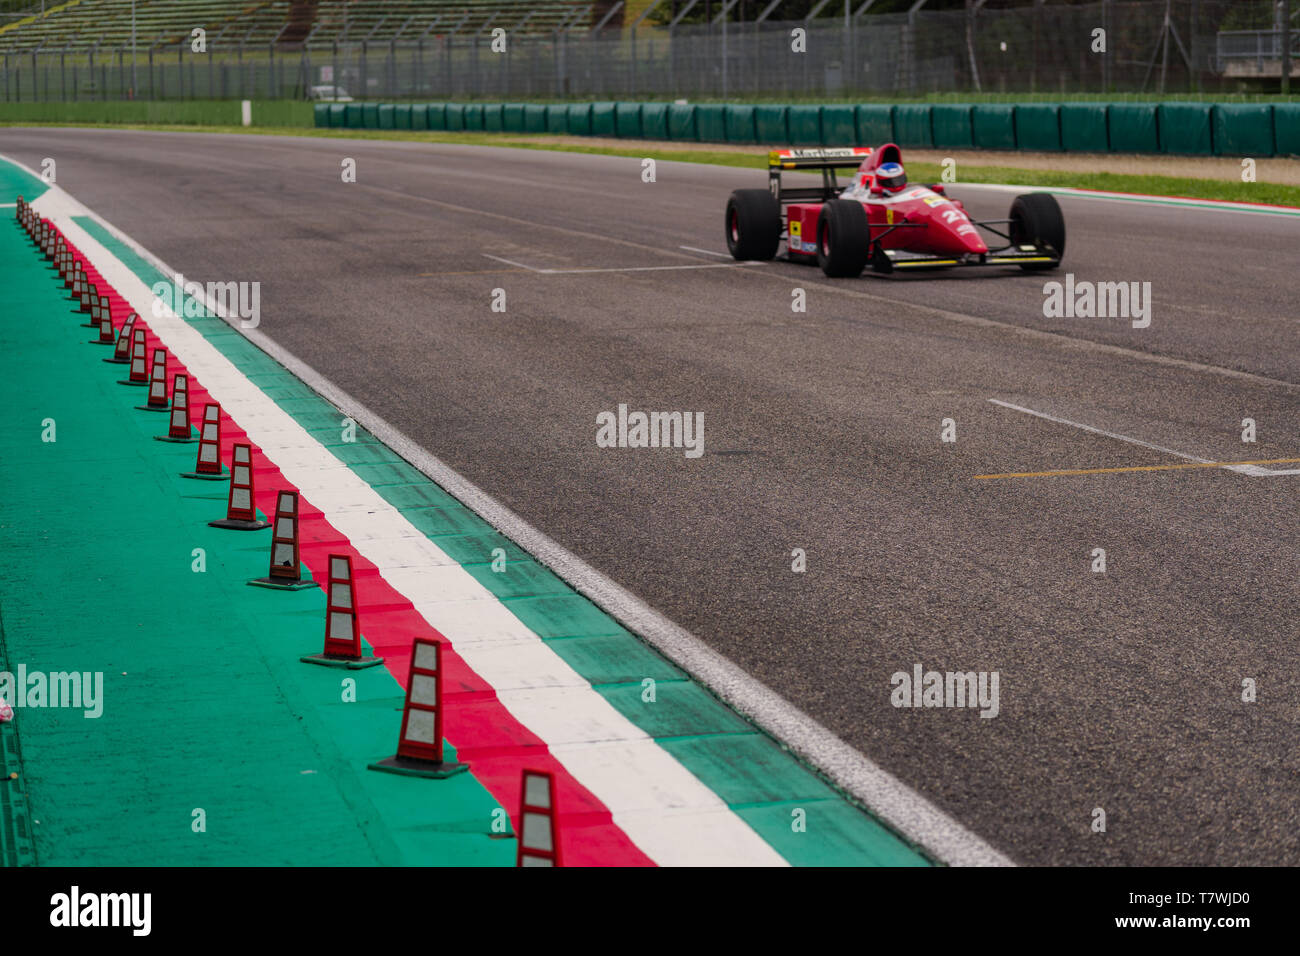 Vintage Ferrari is flying on the main straight of a race track Stock Photo